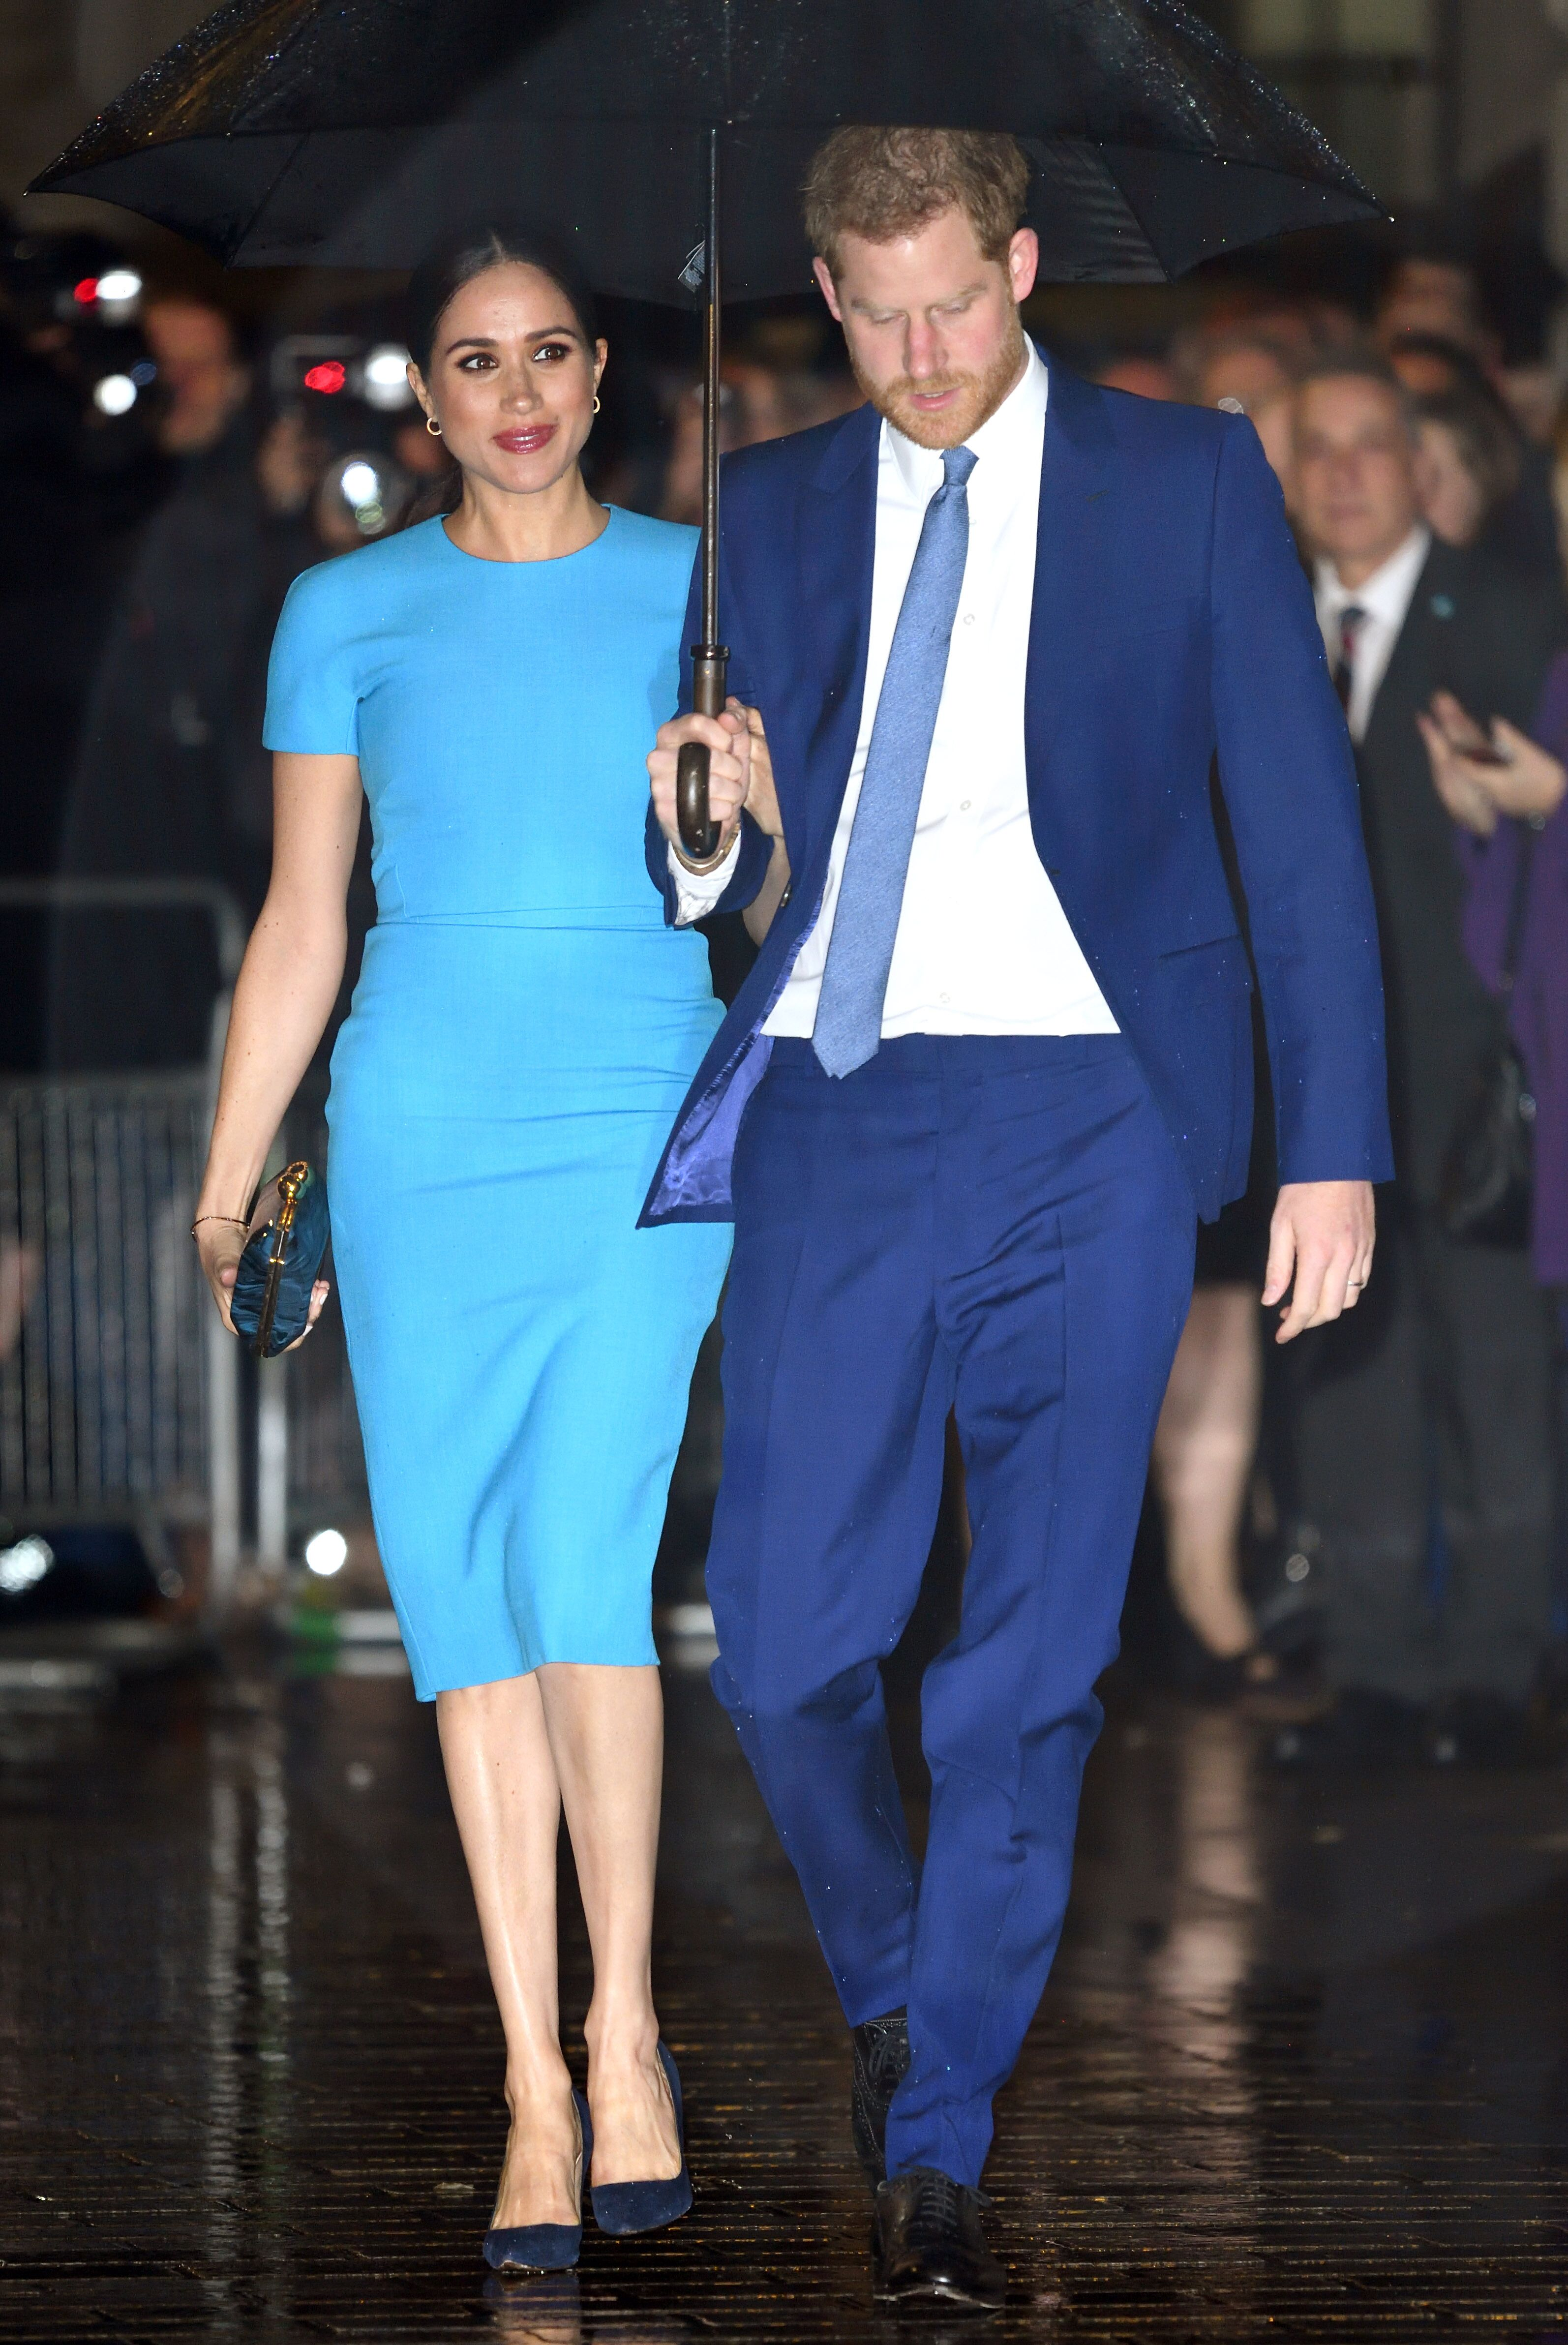 Prince Harry and Duchess Meghan at The Endeavour Fund Awards at Mansion House on March 05, 2020, in London, England | Photo: Karwai Tang/WireImage/Getty Images